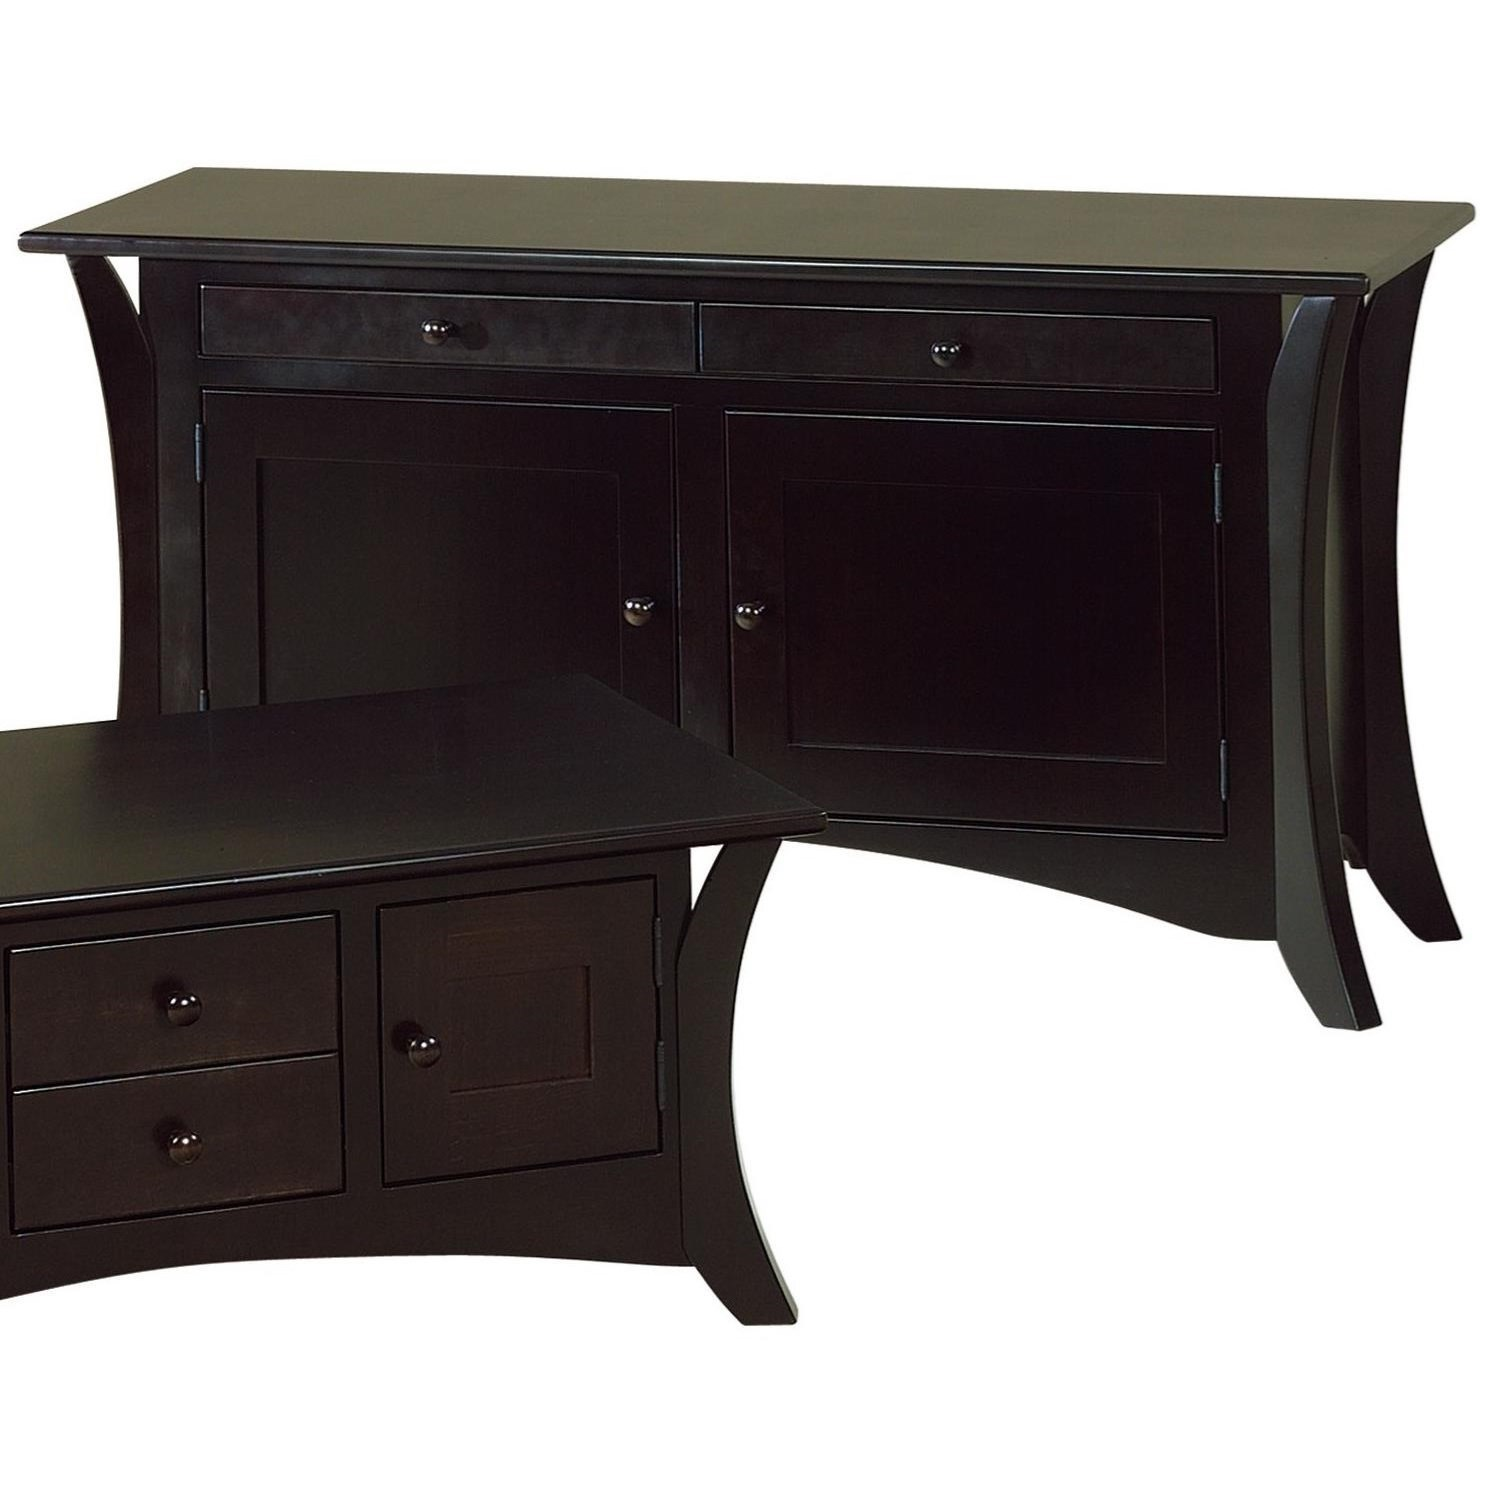 Caledonia Sofa Table by Crystal Valley Hardwoods at Saugerties Furniture Mart